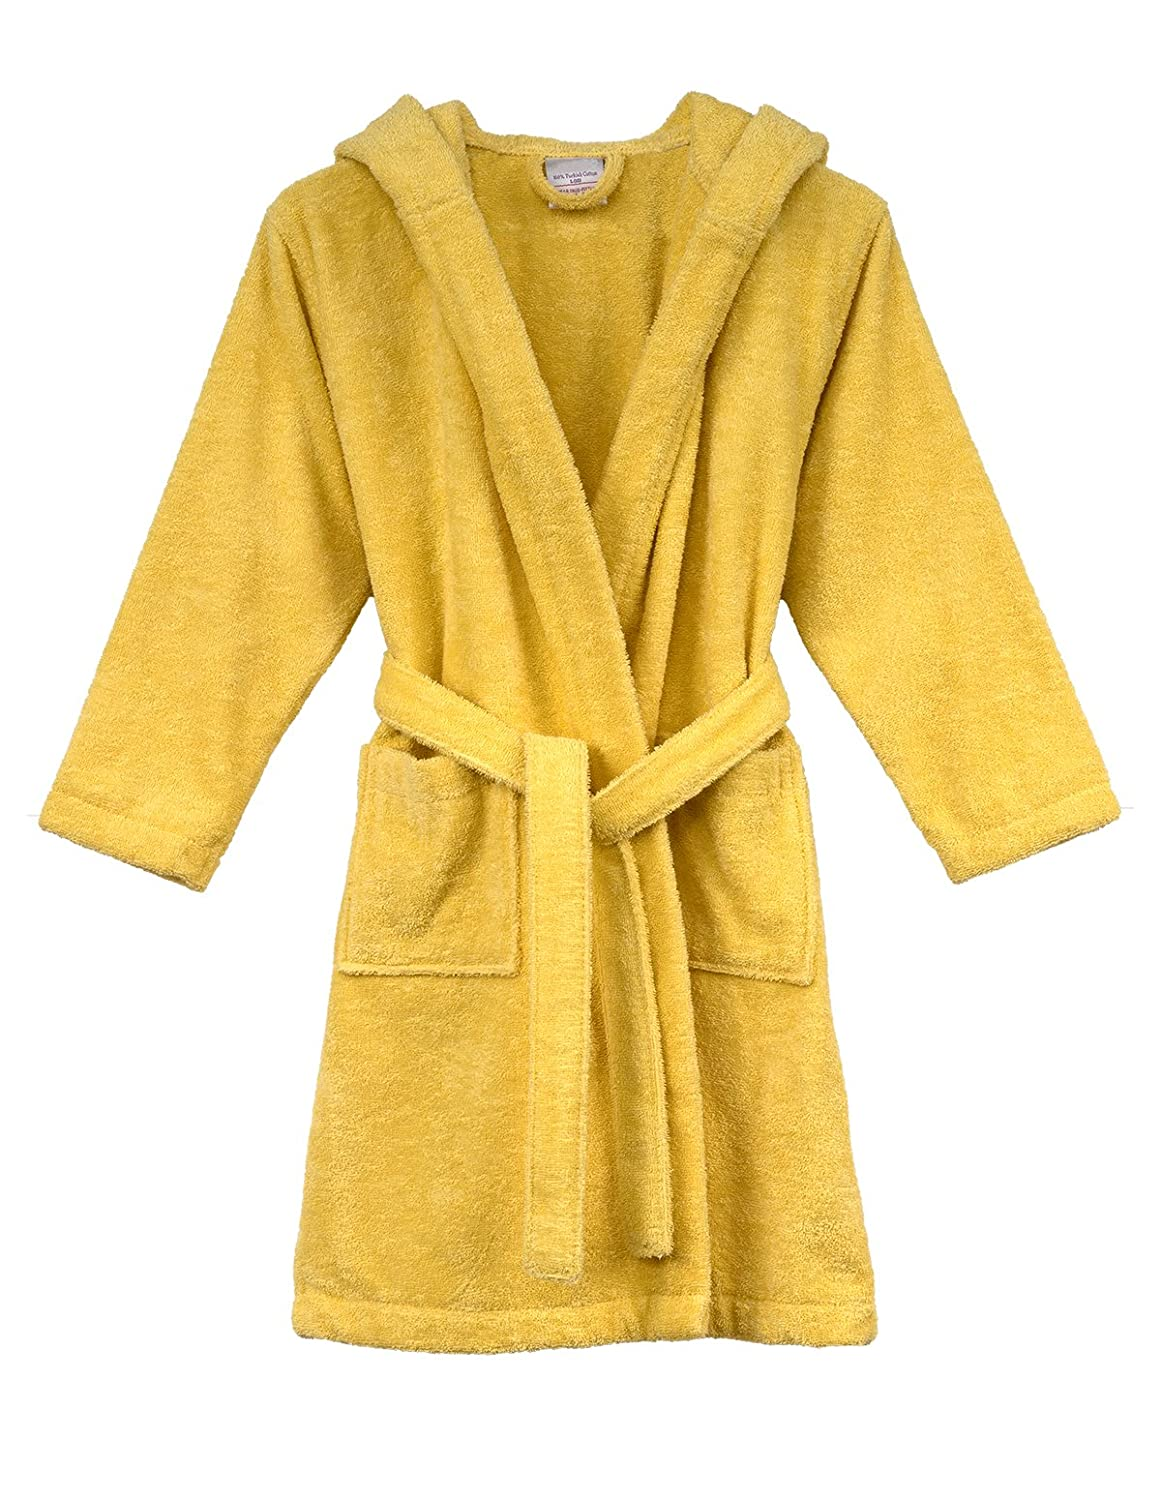 TowelSelections Turkish Cotton Kids Hooded Terry Bathrobe Made in Turkey GKB01-SNS-XS